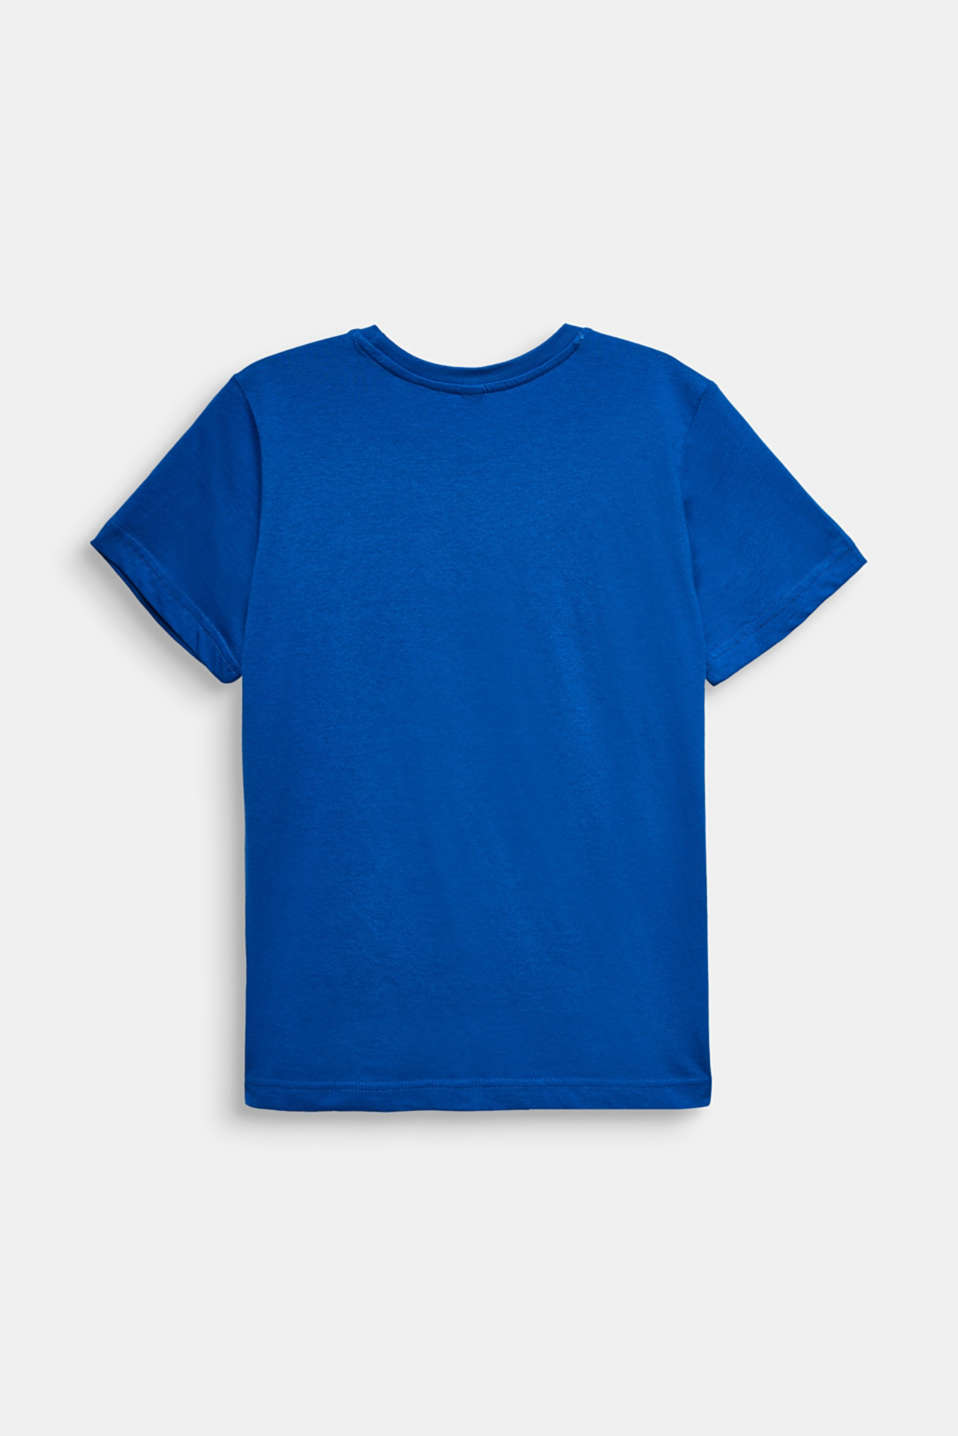 Printed T-shirt, 100% cotton, LCELECTRIC BLUE, detail image number 1